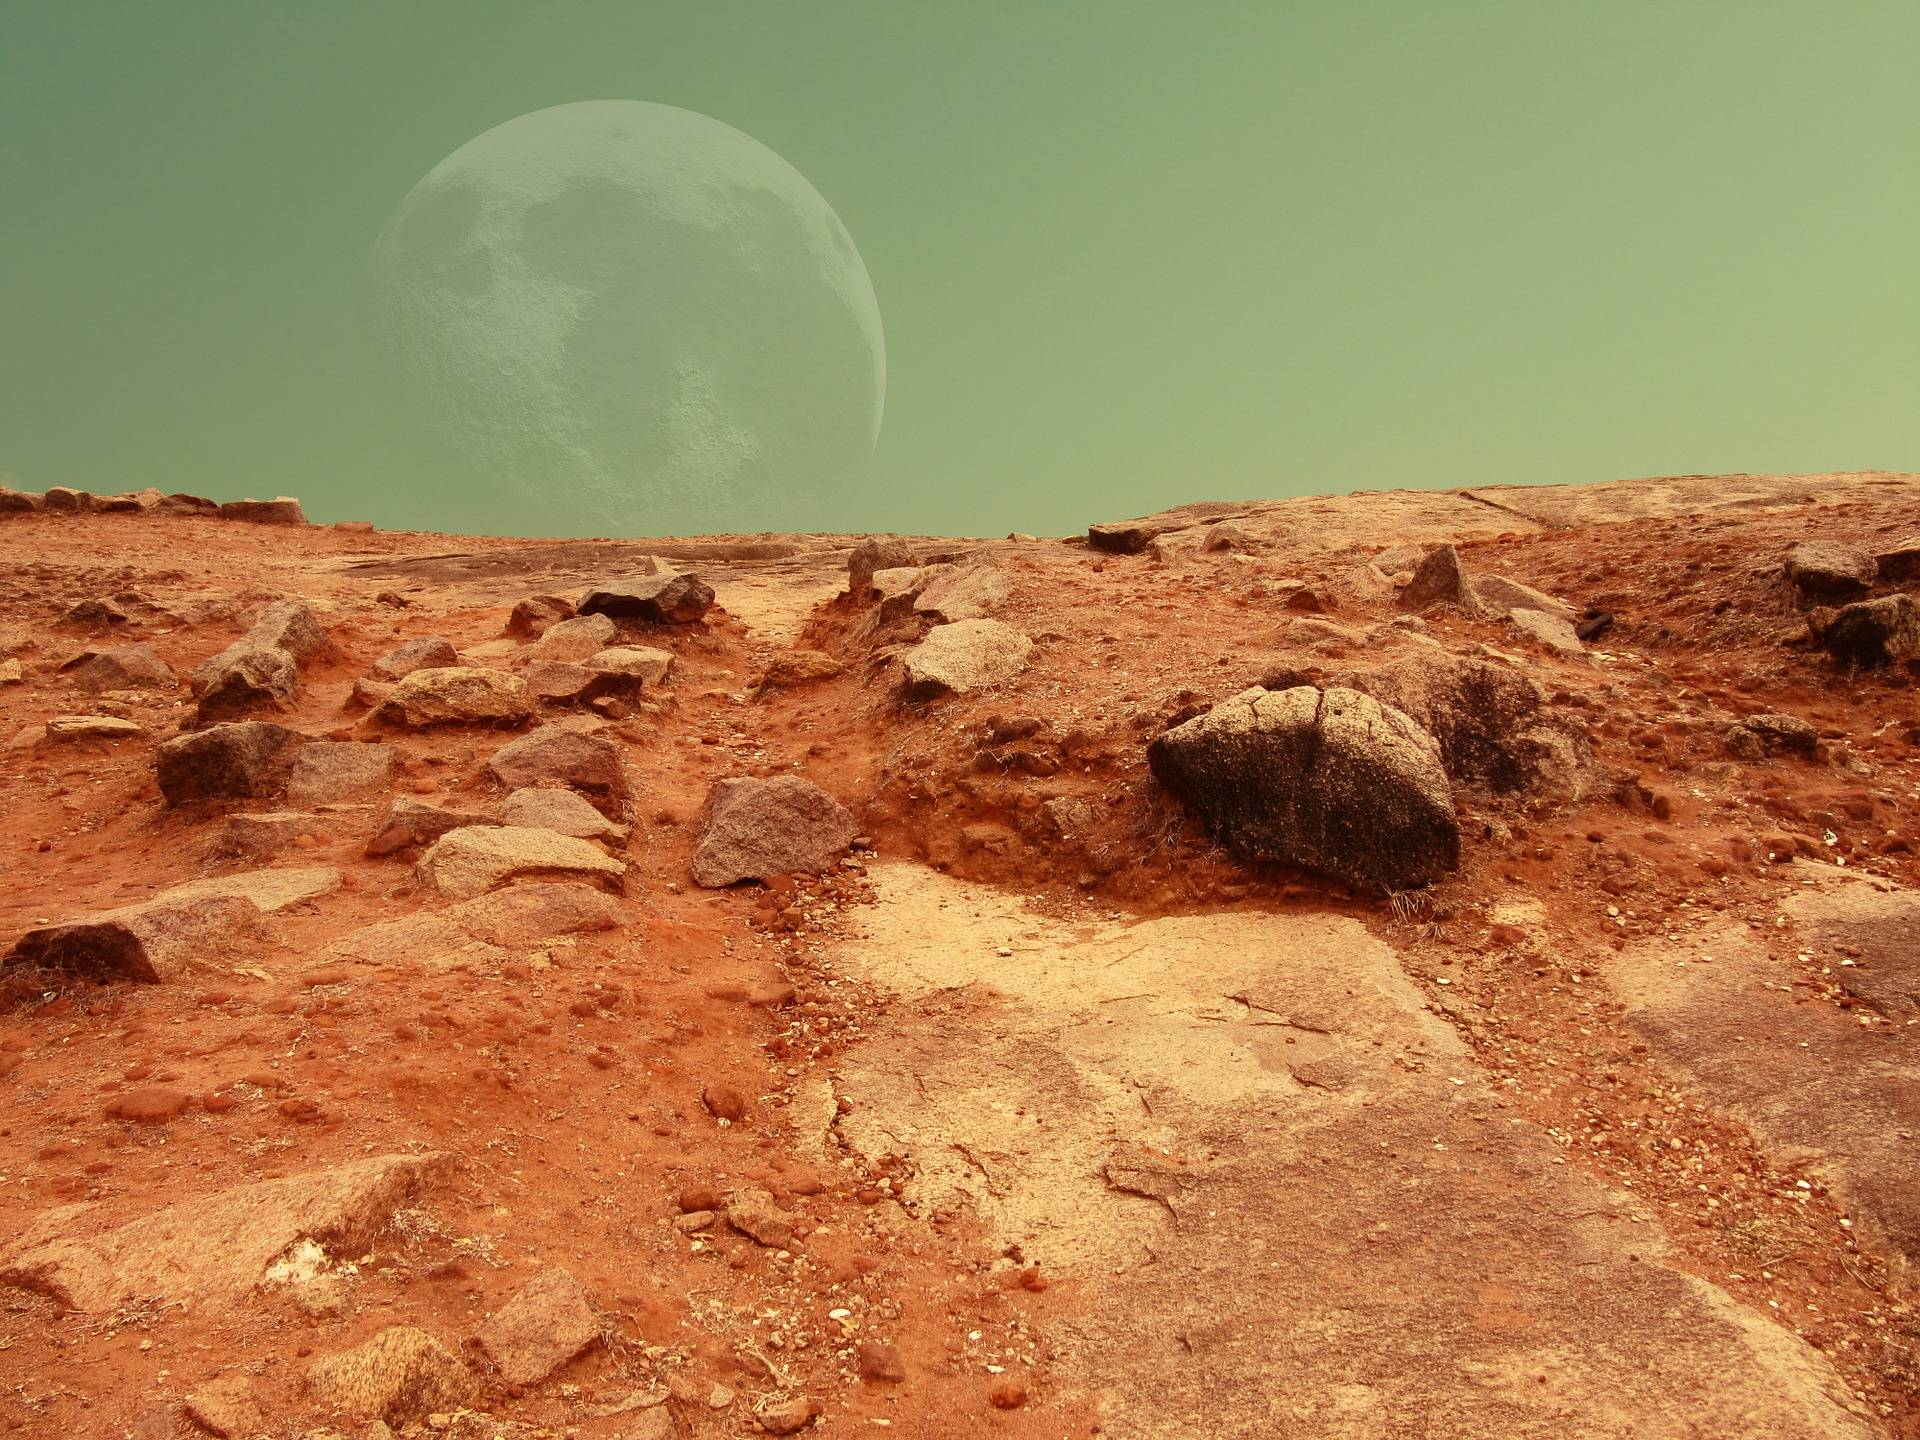 red-planet-571902_1920